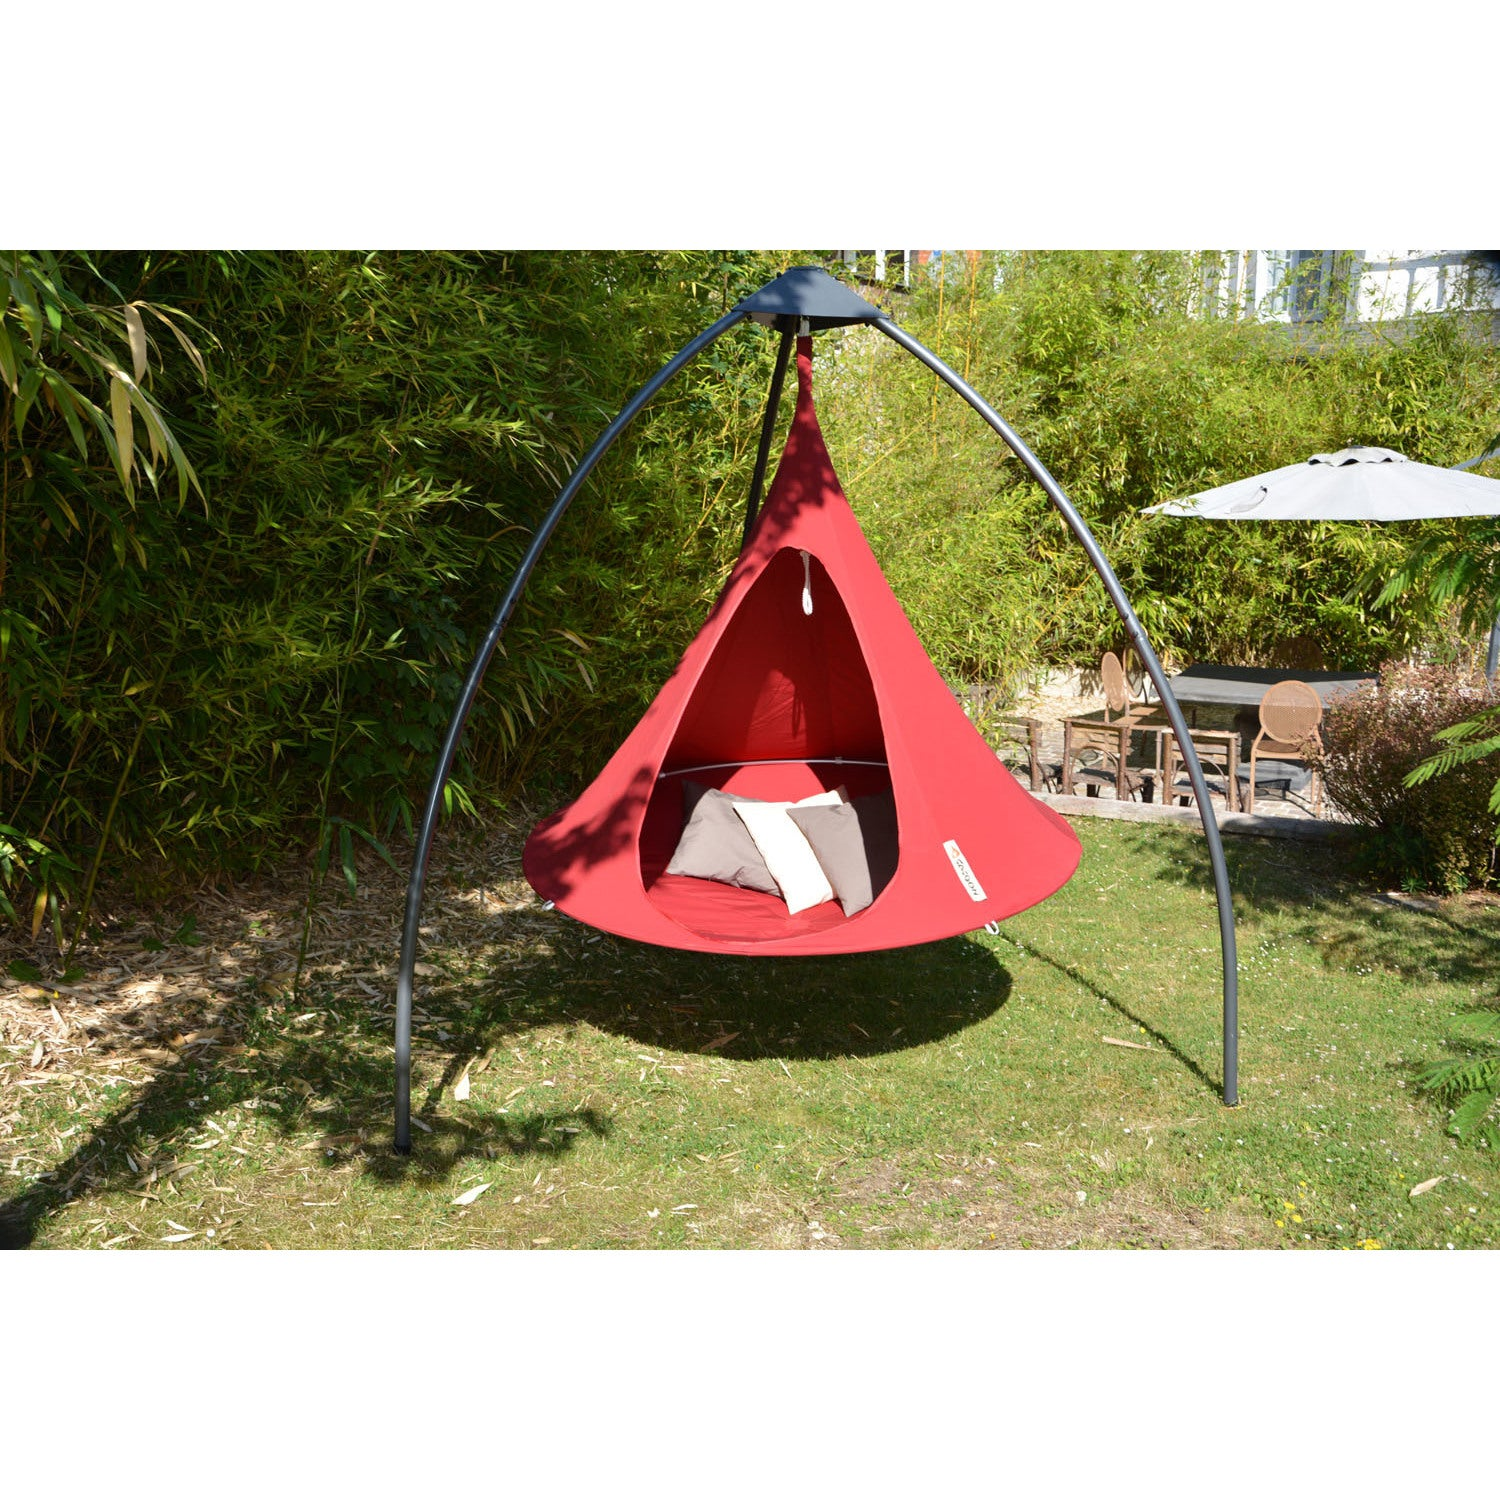 Vivere Home Garden Double Cacoon Hanging Chair   Free Shipping Today    Overstock   25803042